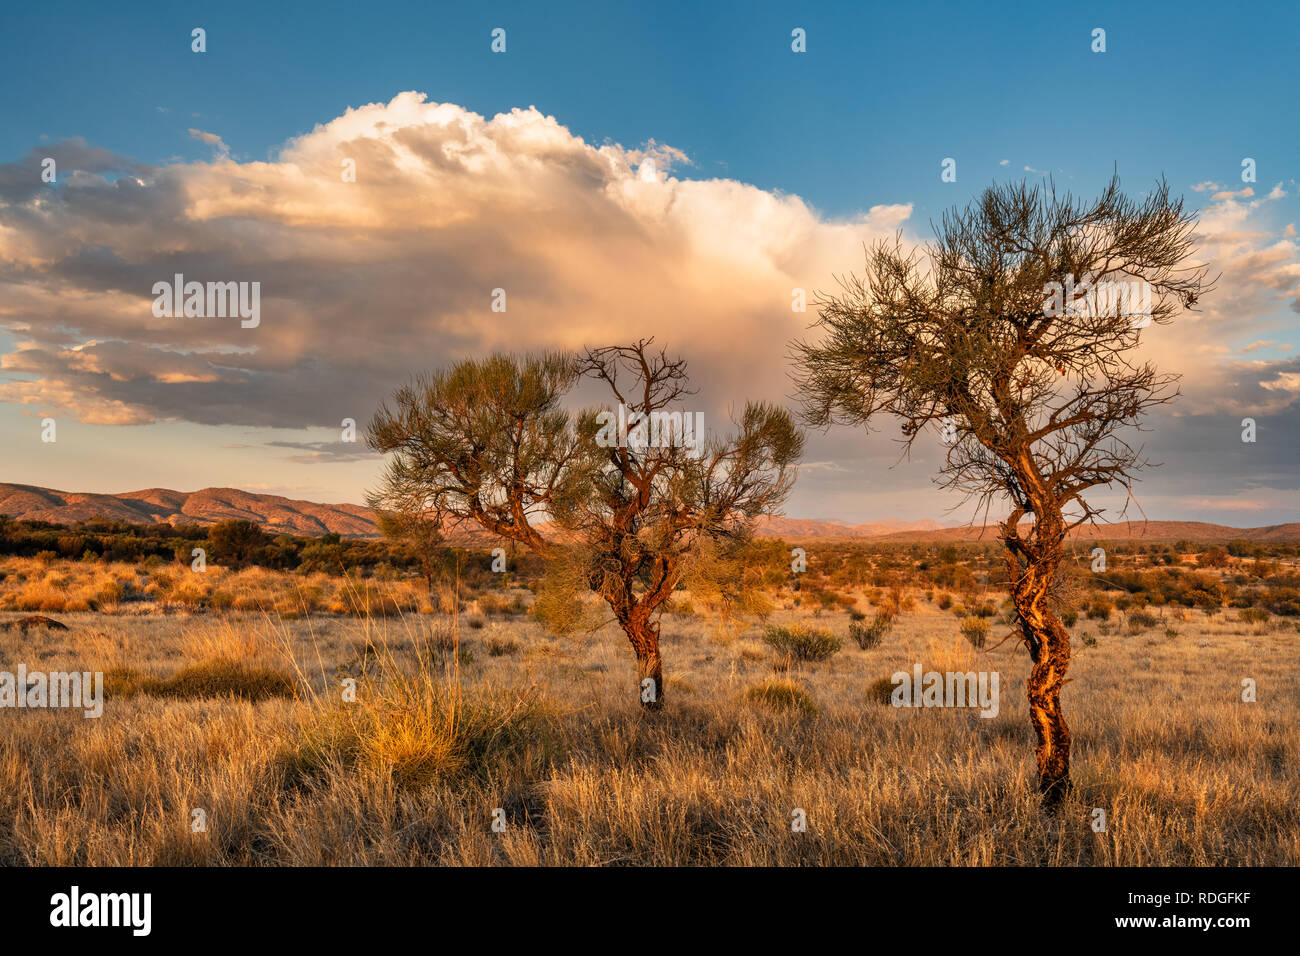 Evening mood in MacDonnell Ranges. - Stock Image